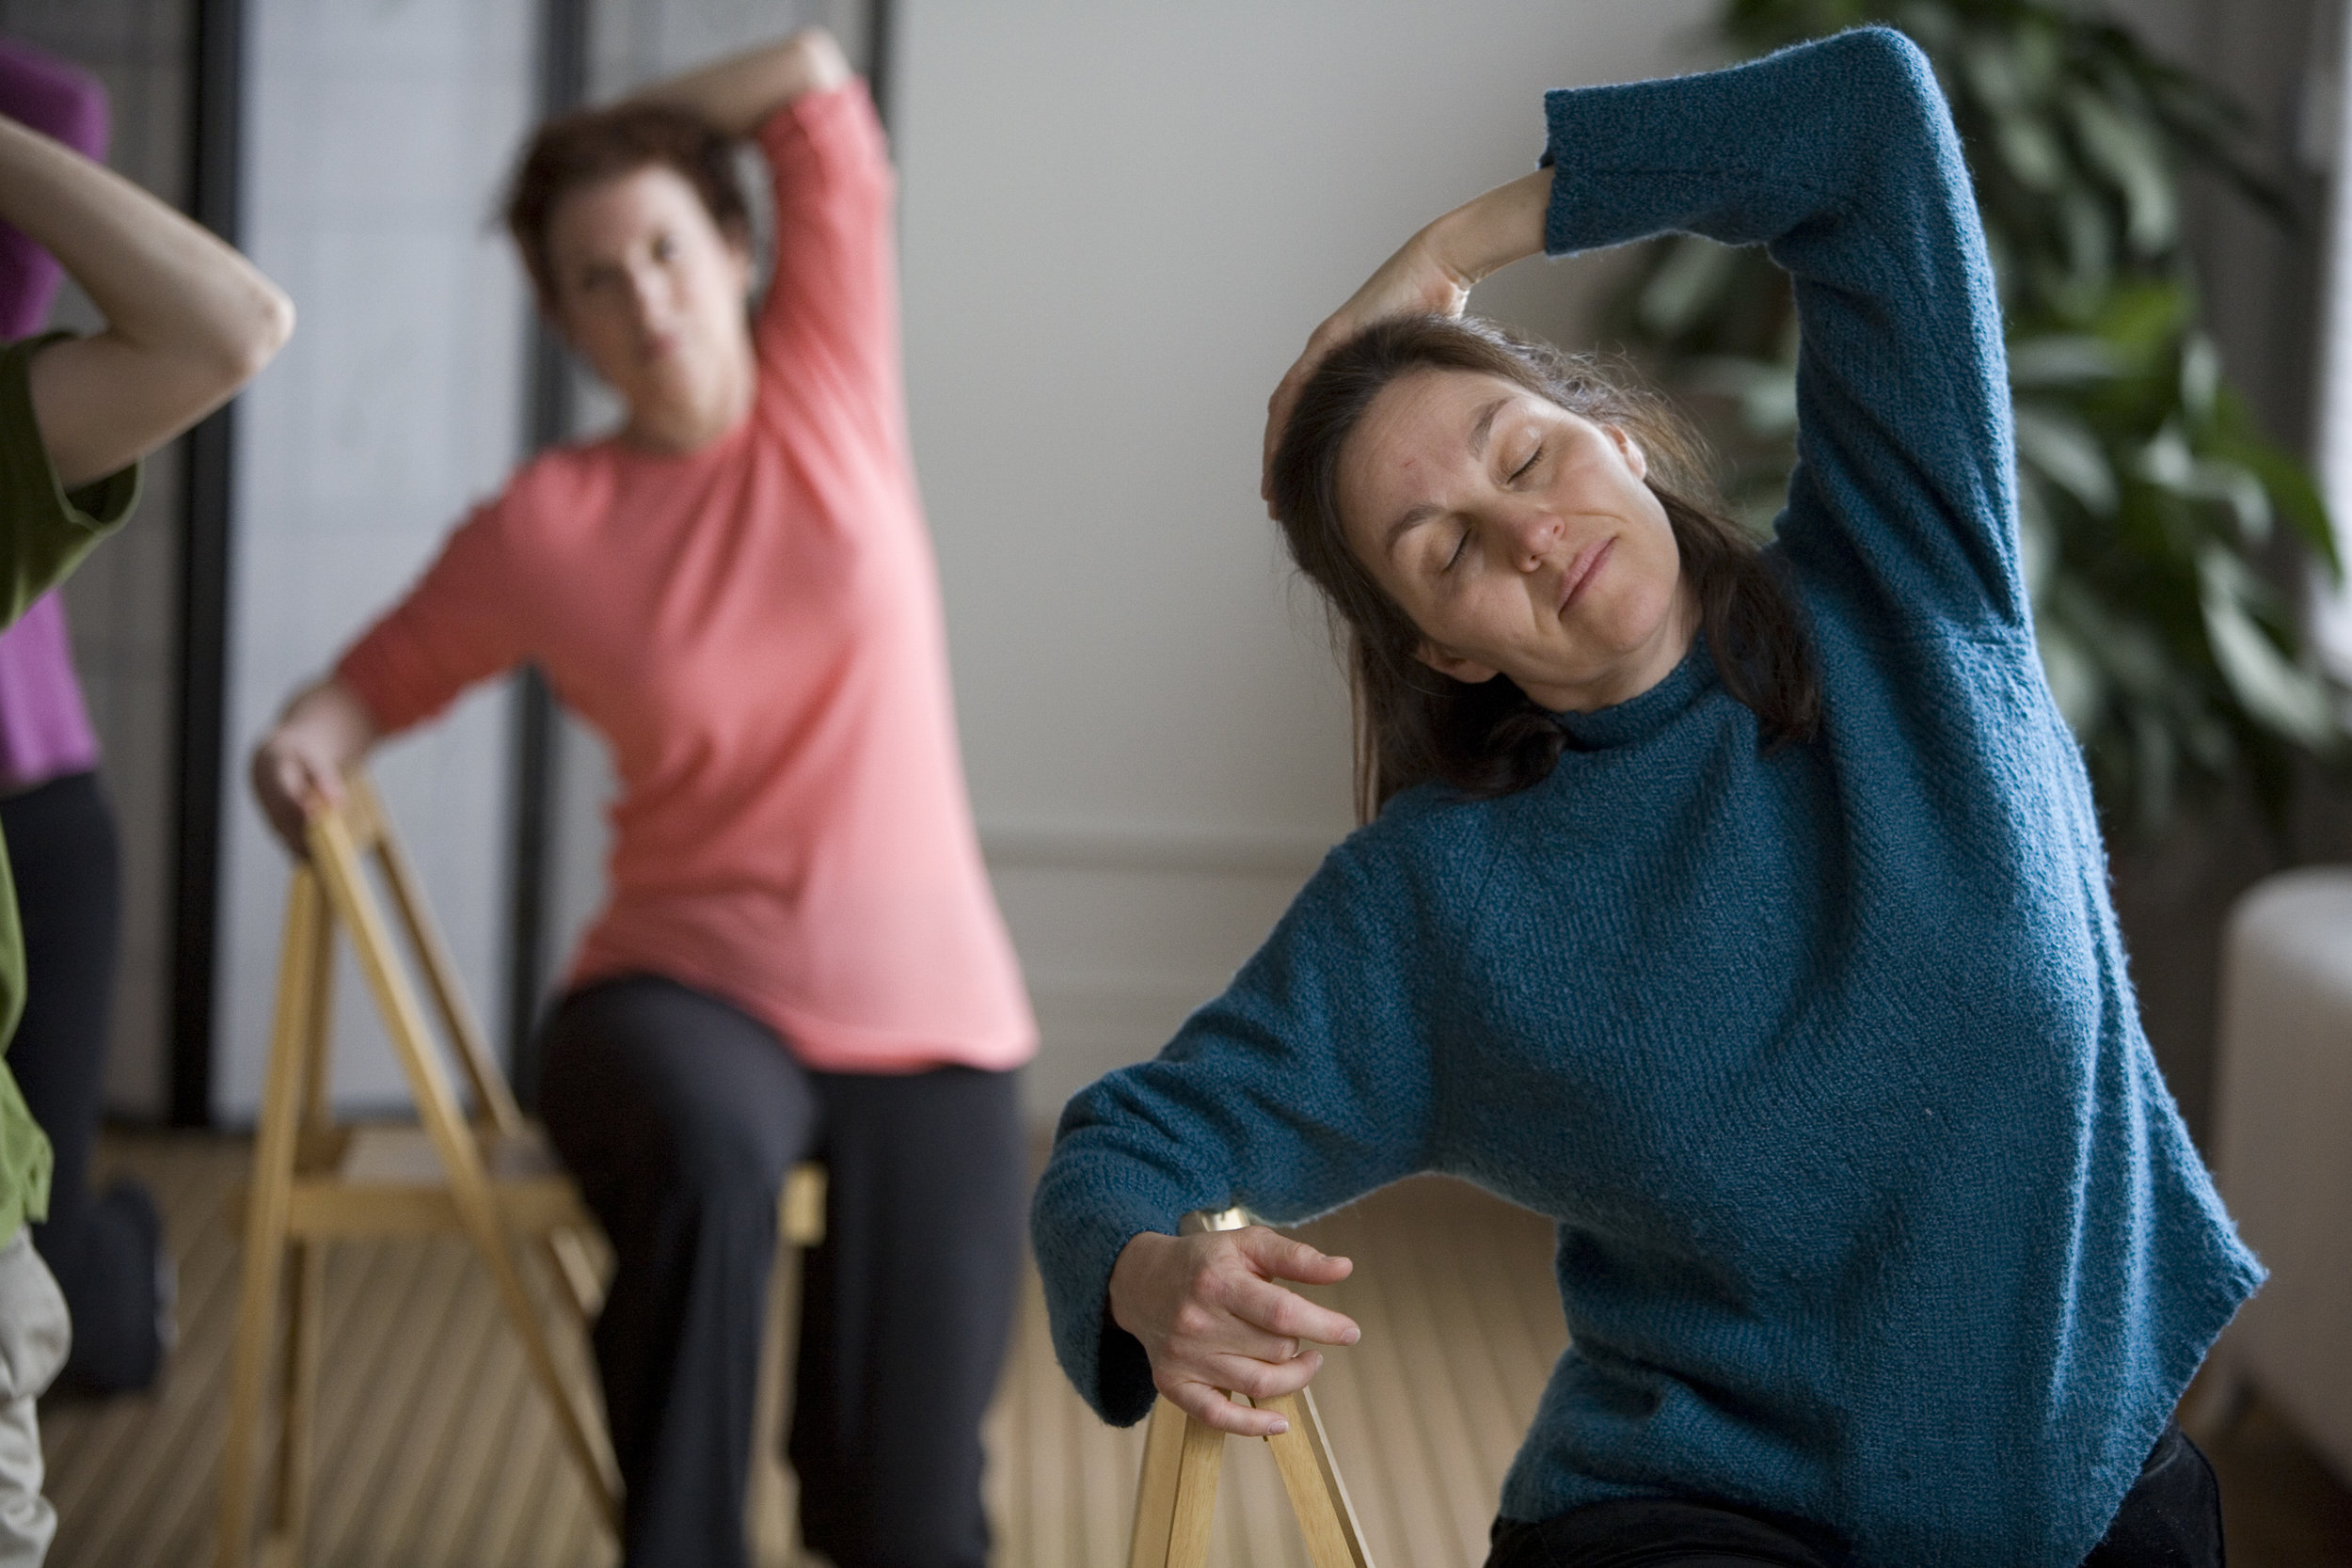 Improve How You Move - The Feldenkrais Method is a mindful movement practice that can help you live with greater comfort and ease.